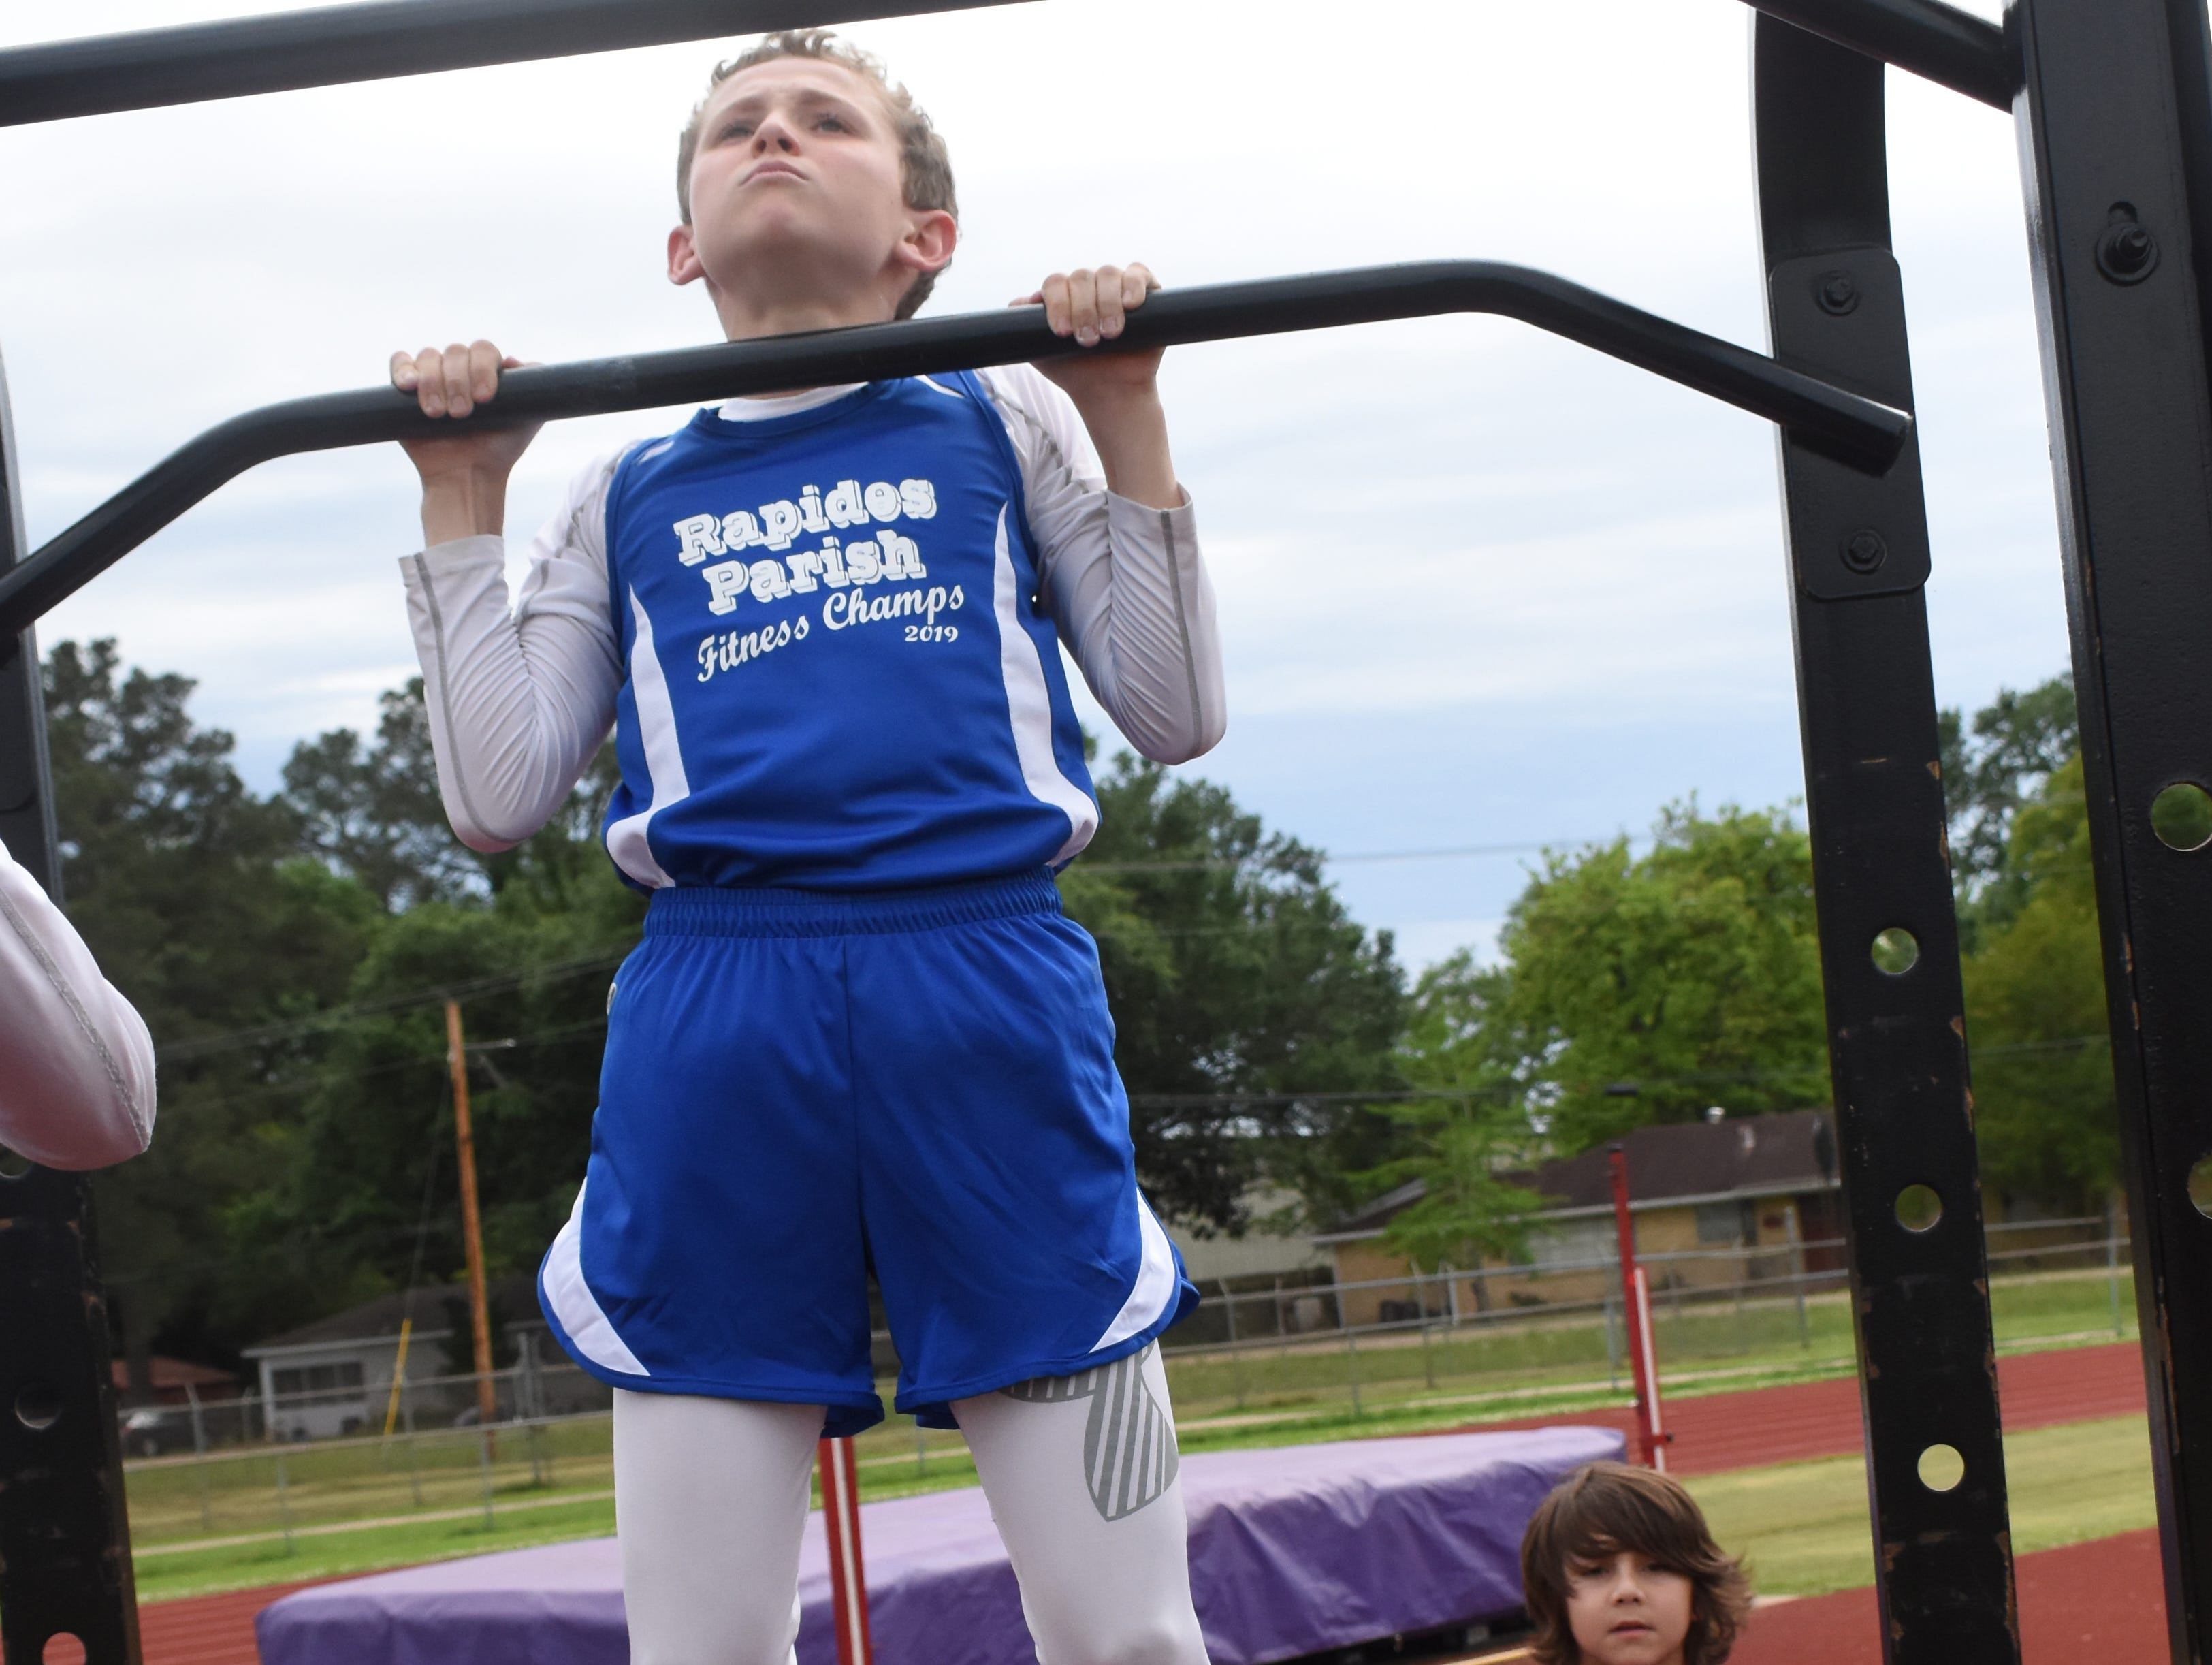 Jacob Dean of Nachman Elementary School does pull-ups. Jacob is part the 2019 Rapides Parish Fitness Team. Jacob and five other Rapides Parish elementary school students will compete in the 2019 State Championship Fitness Meet to be held Saturday, April 27, 2019 at Alexandria Senior High School. The meet is part of the Governor's Council on Fitness and Sports. Students from throughout Louisiana will compete in seven events: 50-yard dash, sit and reach, pull-ups,  shuttle run, curl-ups (sit-ups), standing long jump, and the 600-yard run. For the past three years, the Rapides Parish Fitness Team has placed first at the meet. Dean was the highest scoring boy last year and won the title of 2018 Mr. Fitness for the State of Louisiana. The meet will be from 10 a.m. to 2 p.m.